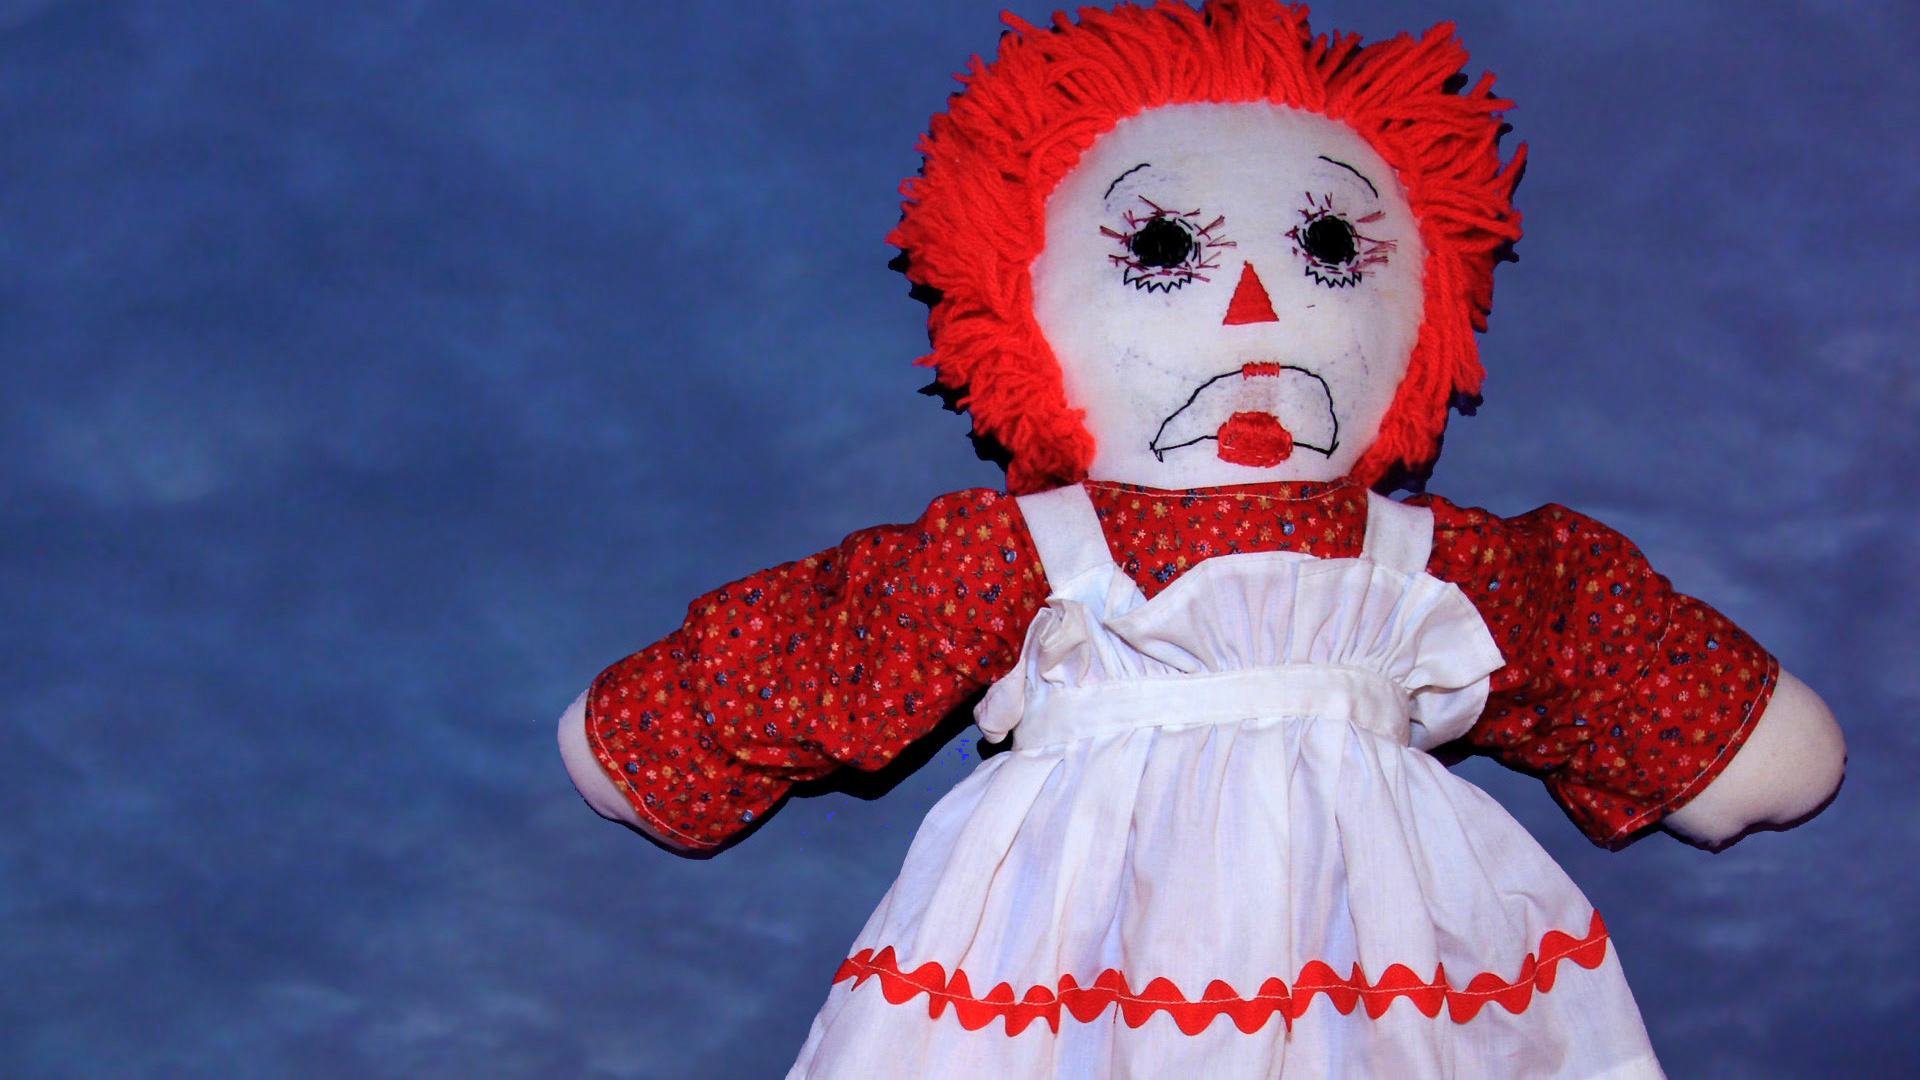 the 21st Chromosome - Raggedy Ann choking